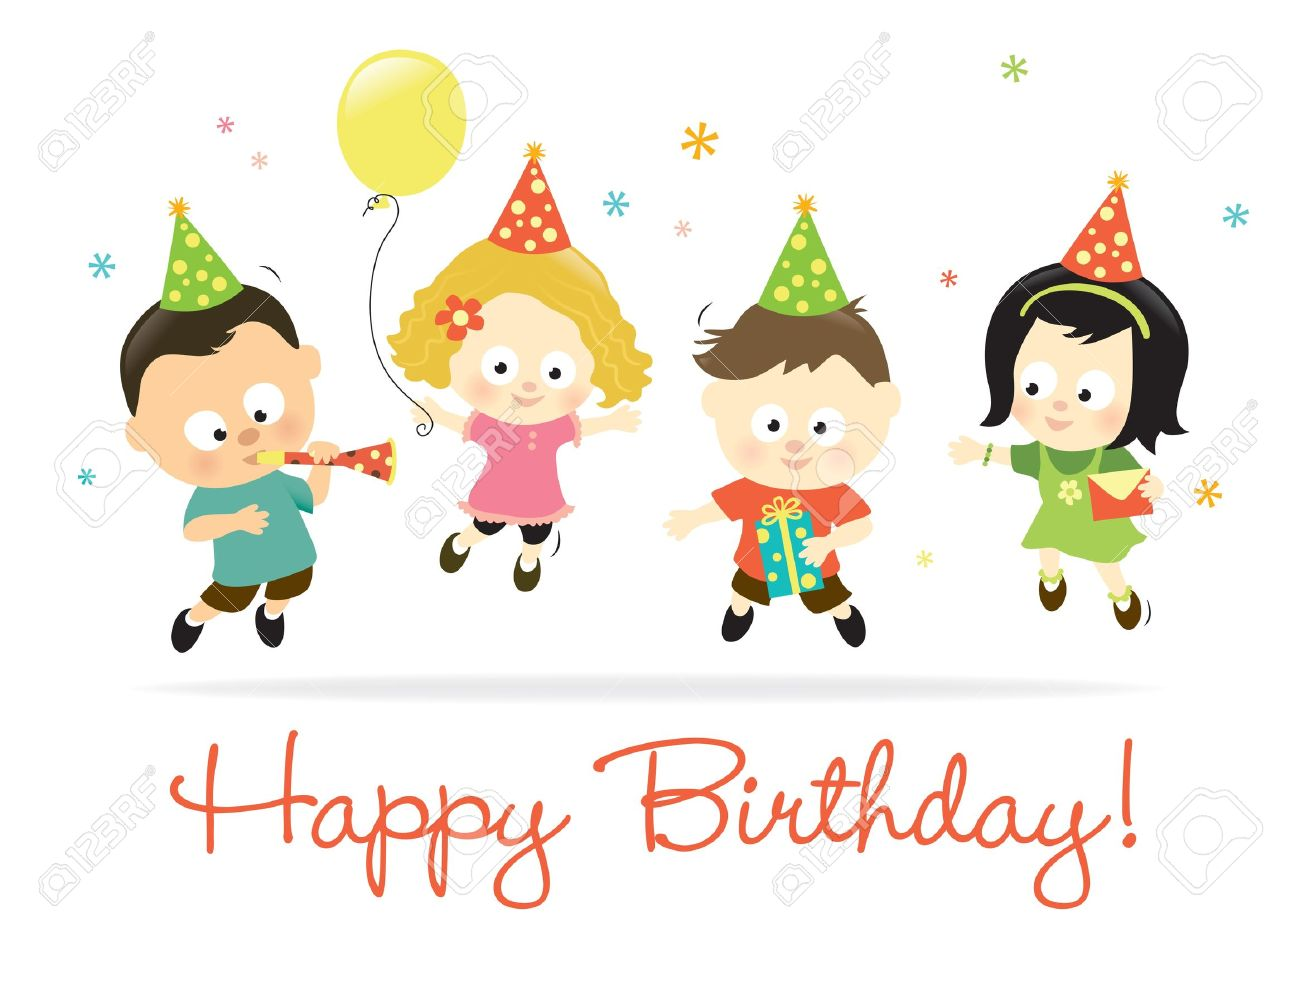 Happy Birthday Kids 2 Royalty Free Cliparts Vectors And Stock